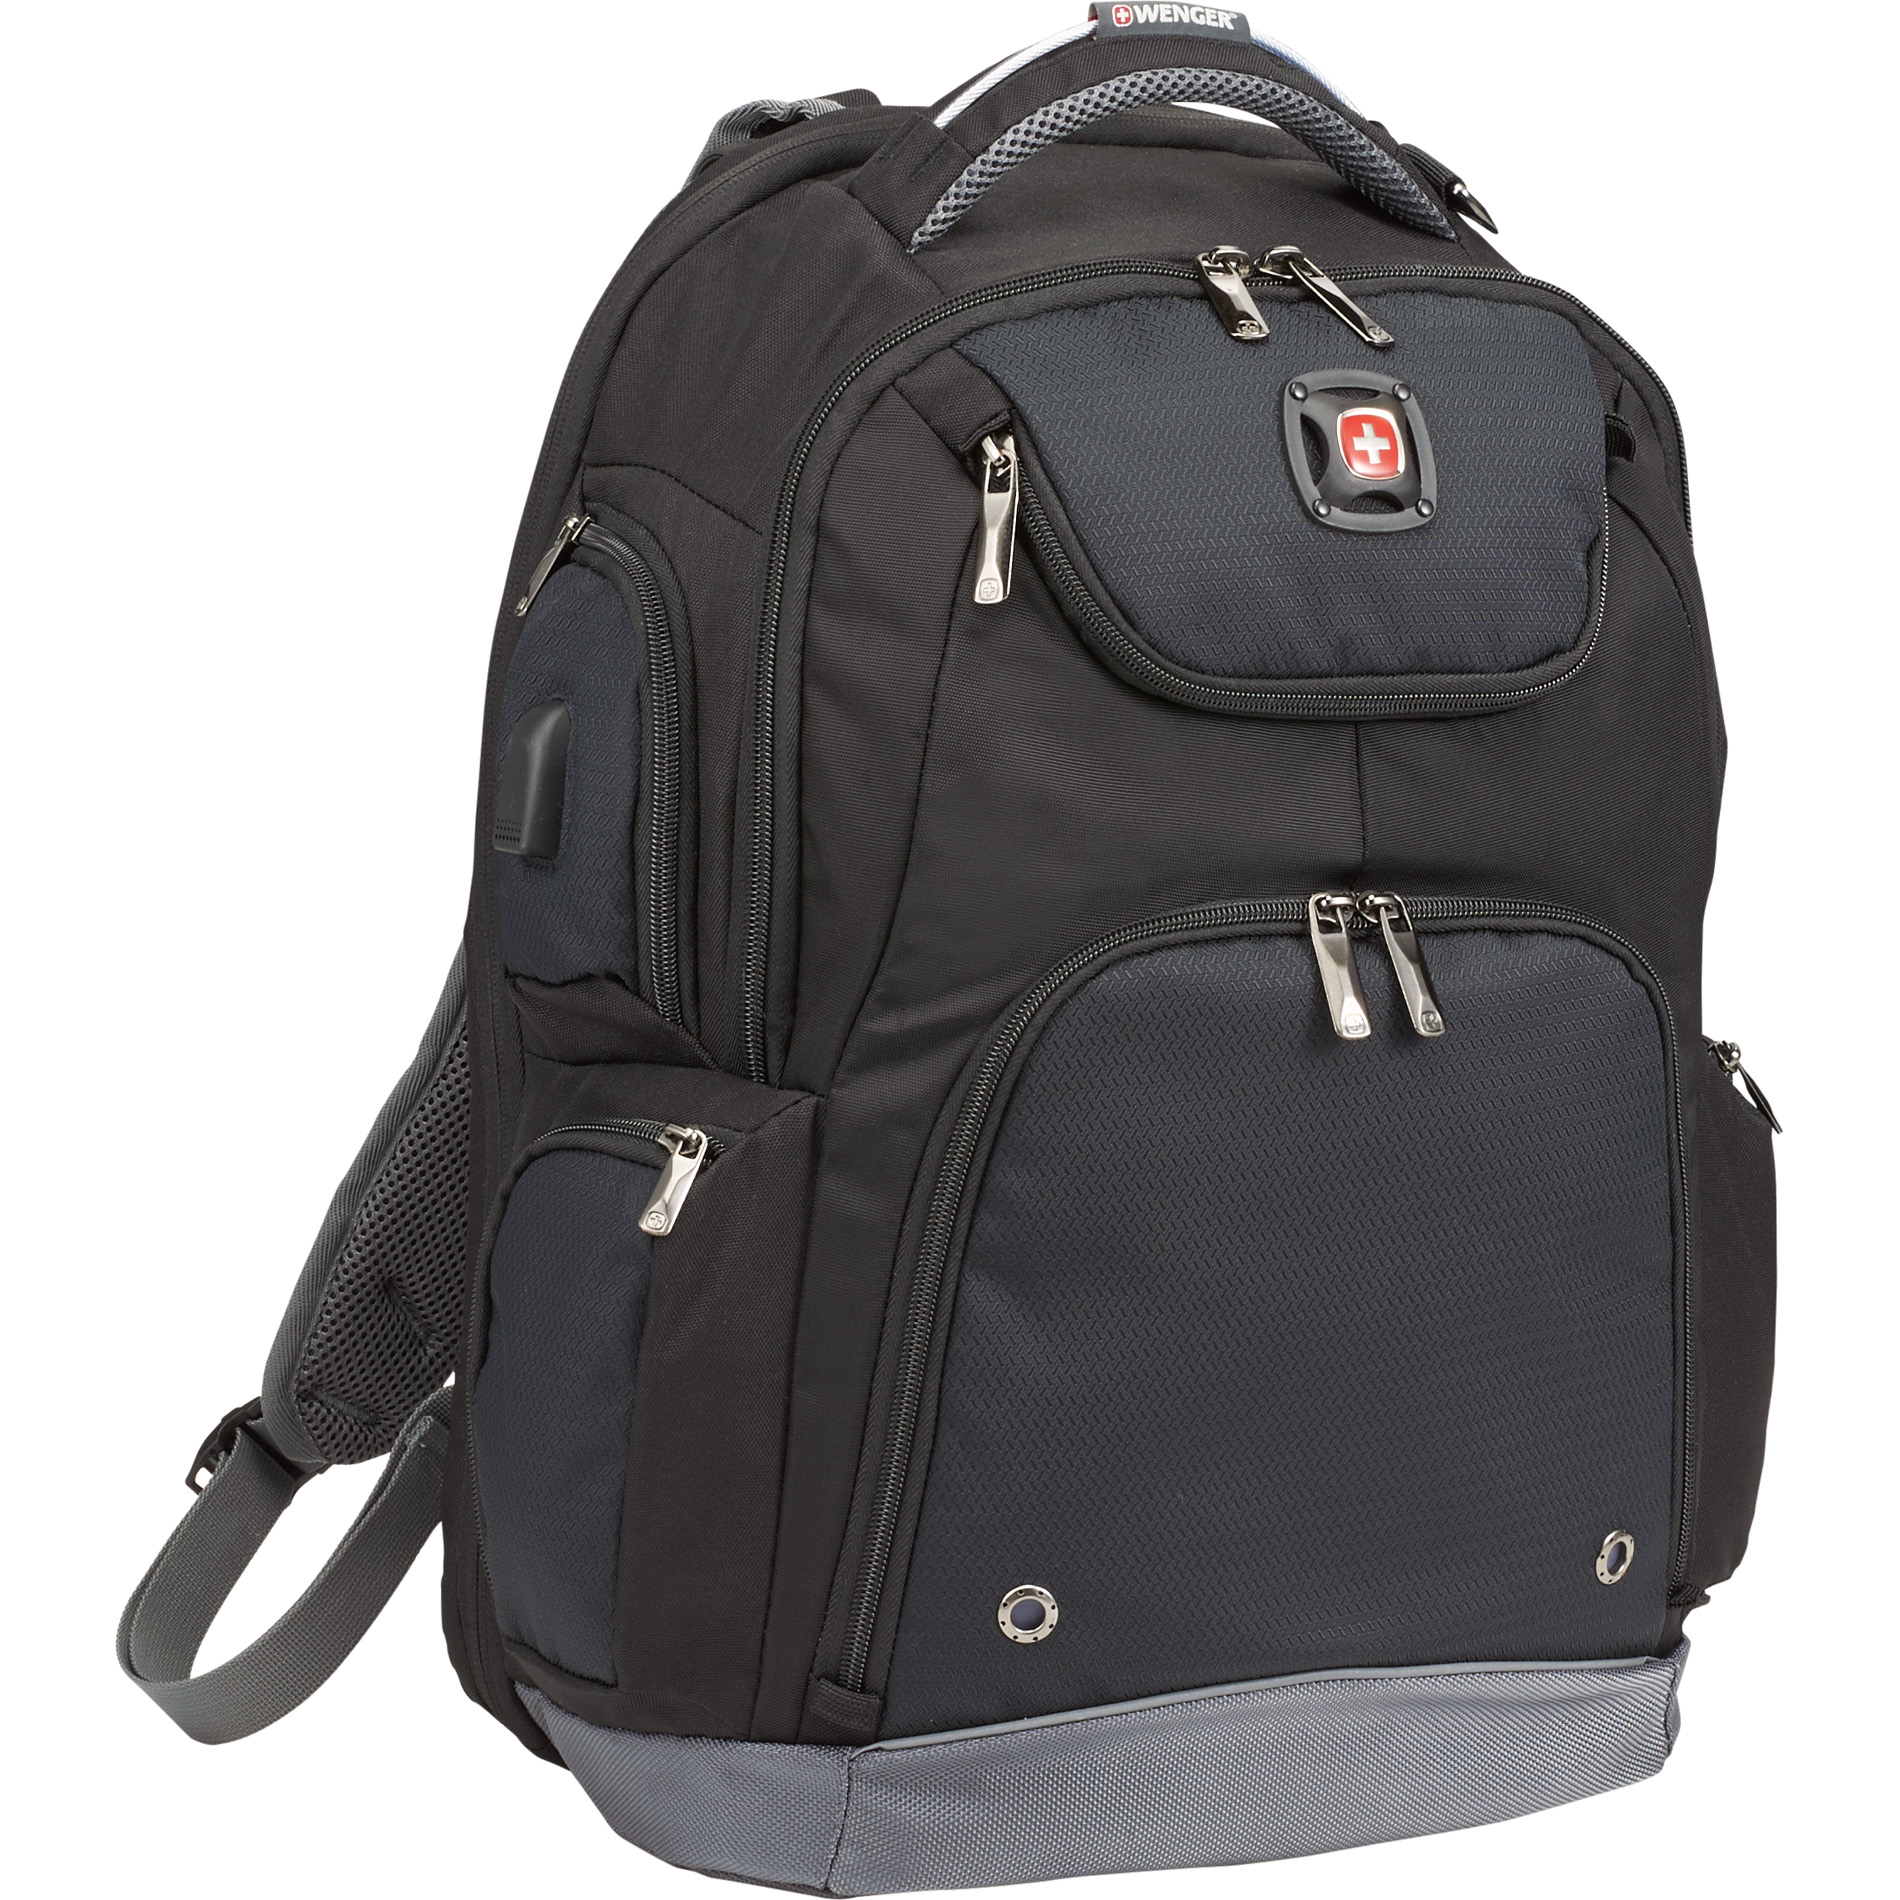 "Wenger 9550-42 - Odyssey Pro-Check 17"" Computer Backpack"